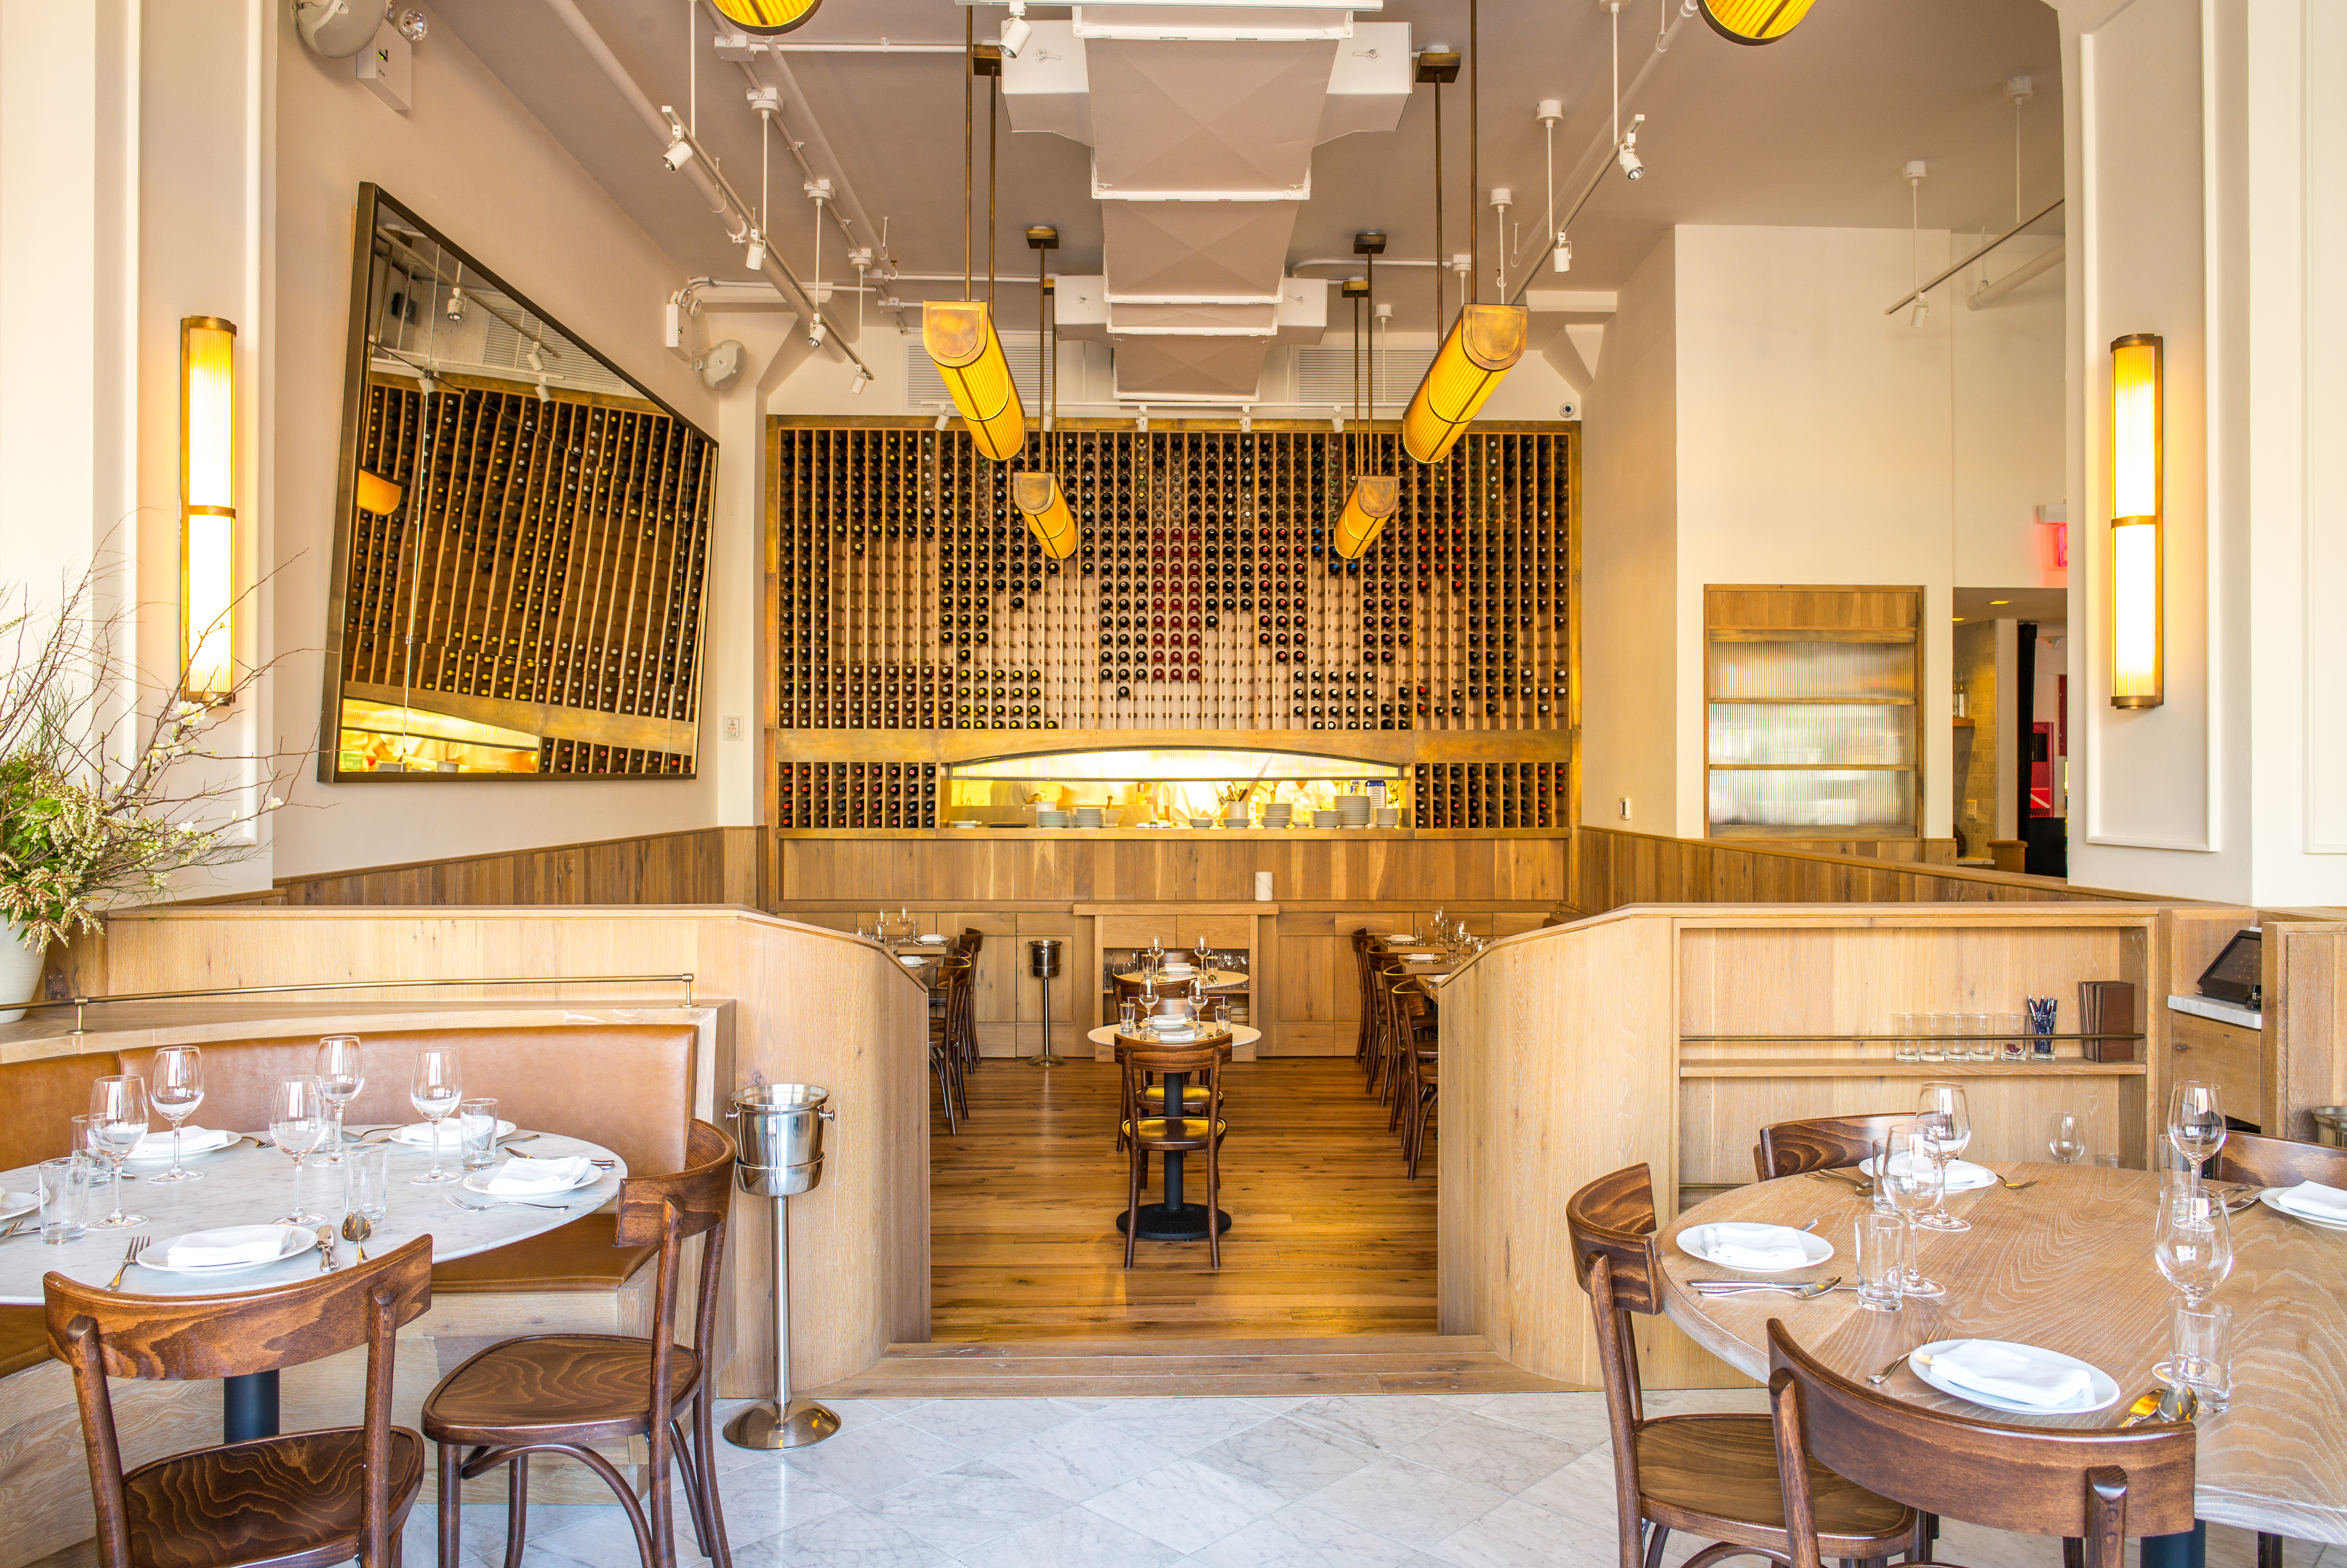 Cafe Altro Paradiso's high-ceilinged dining room